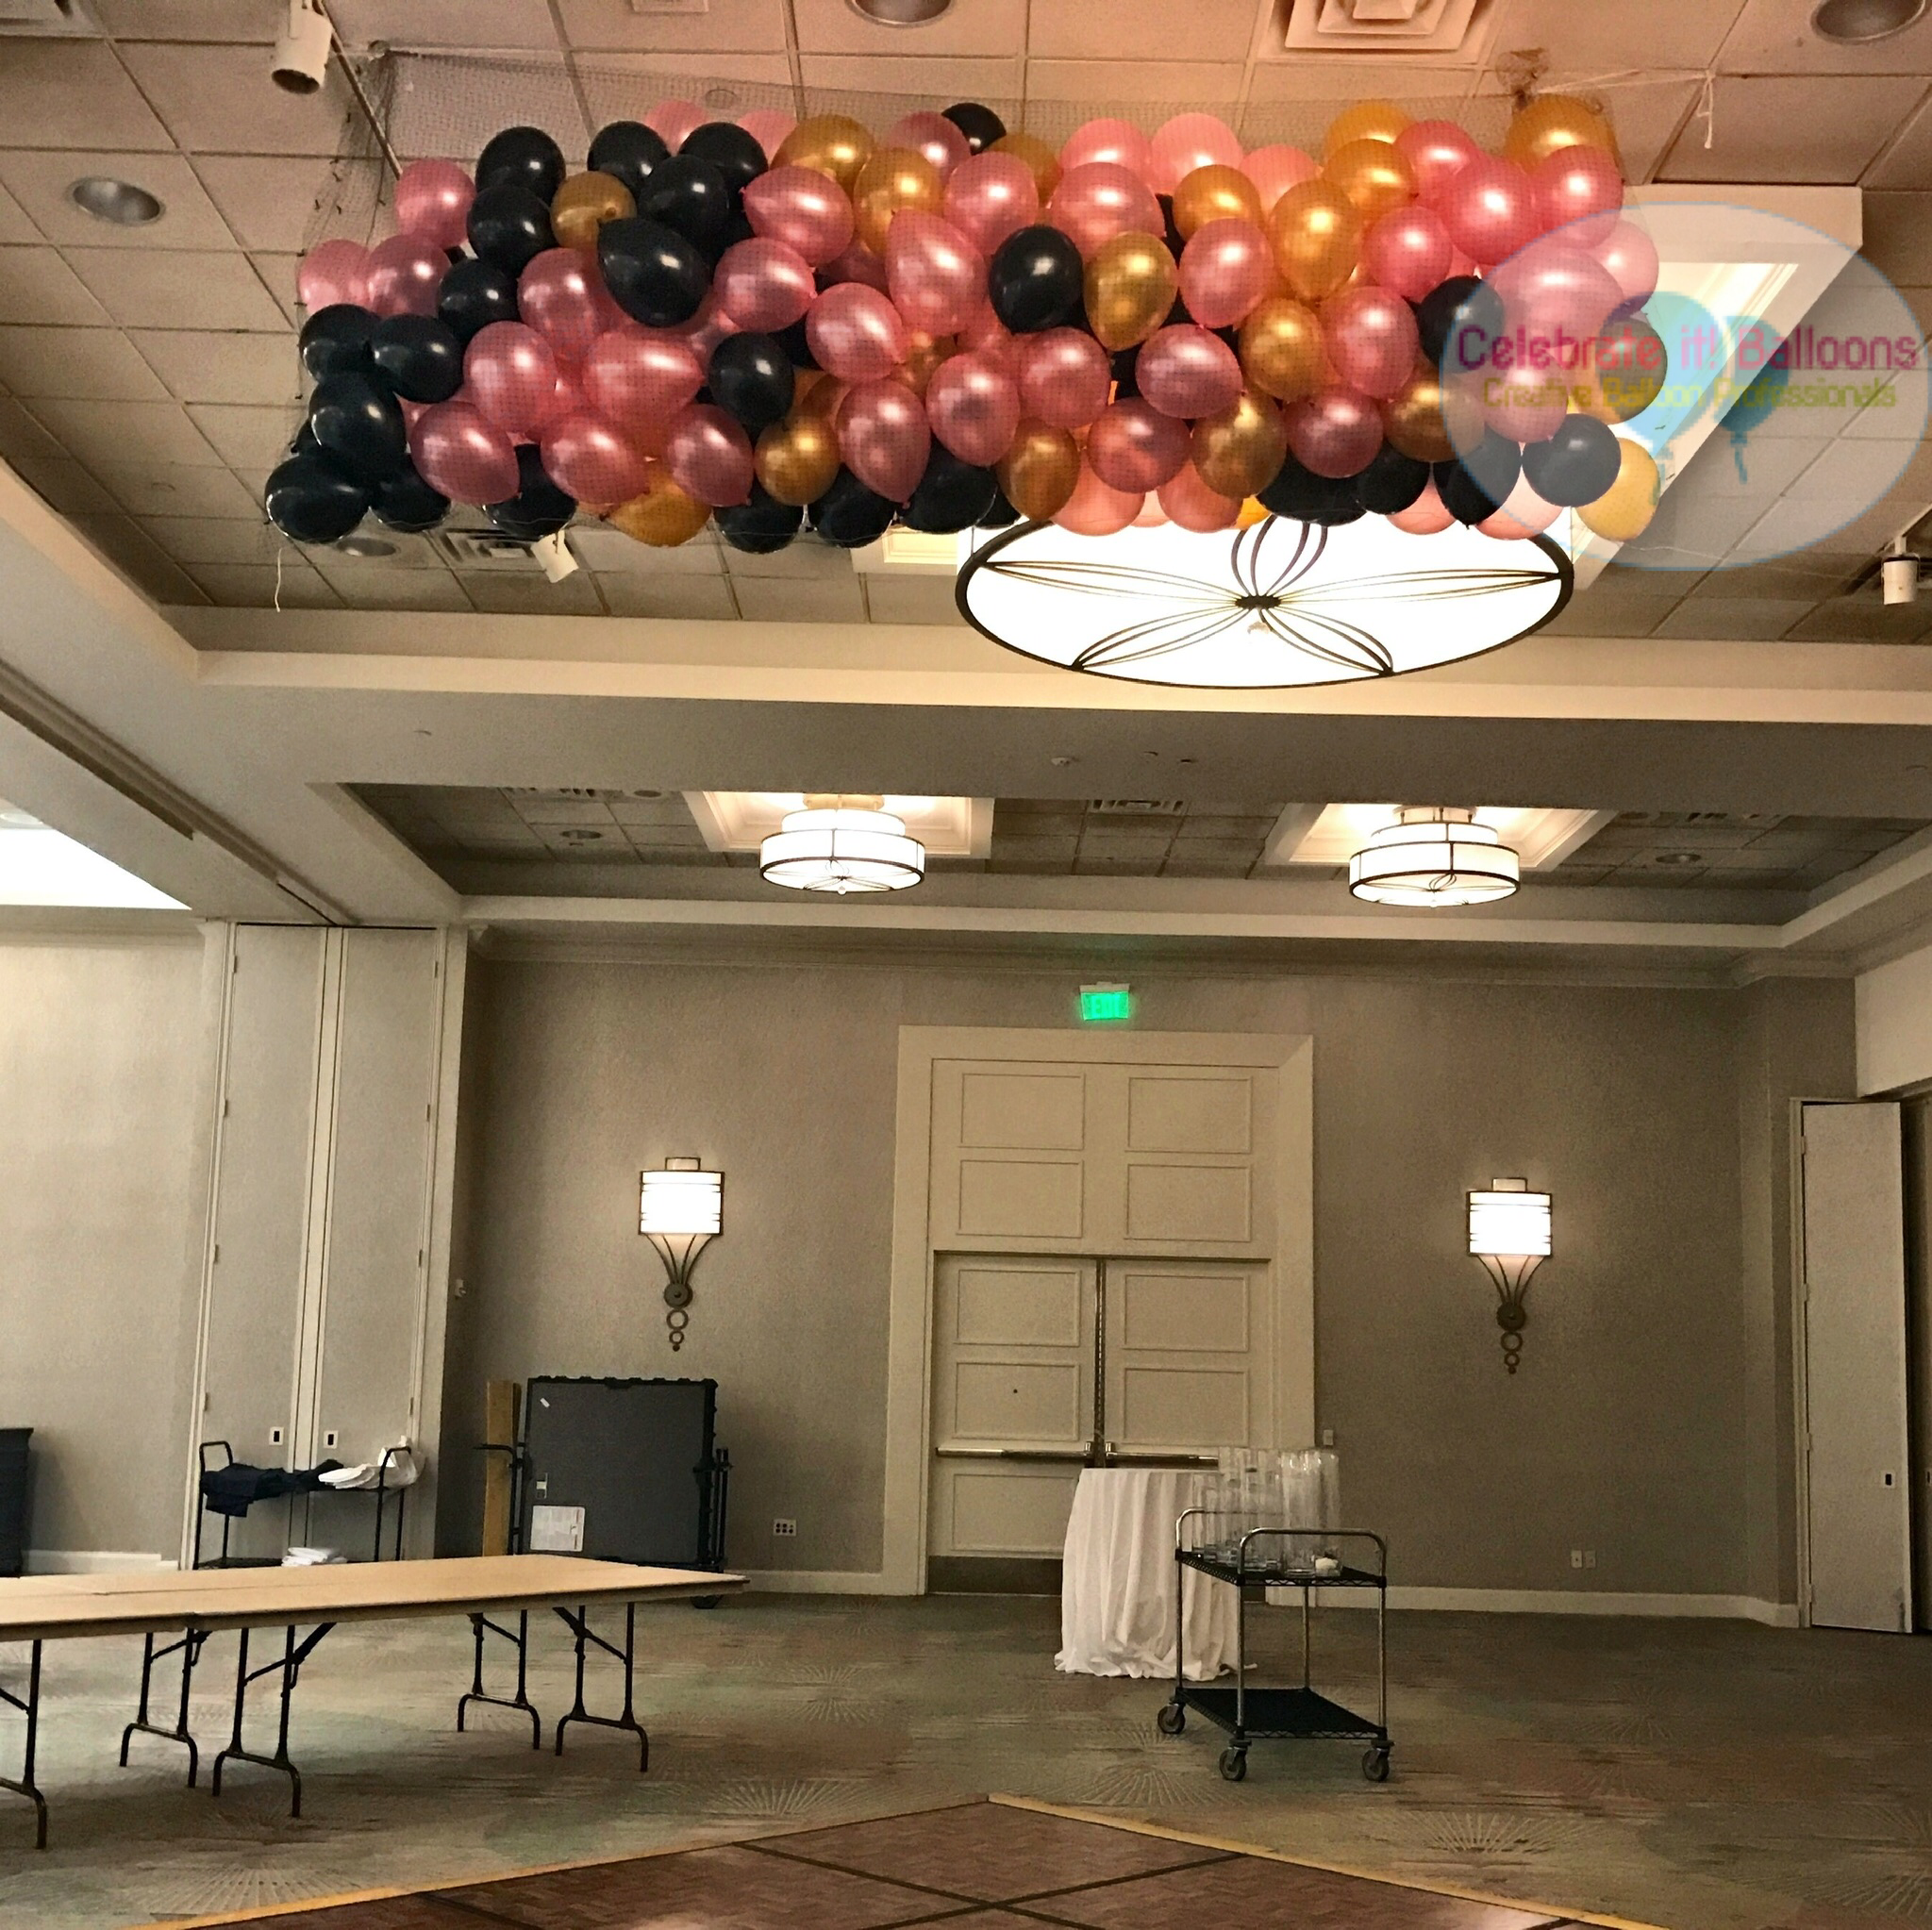 balloon drop for NYE wedding party